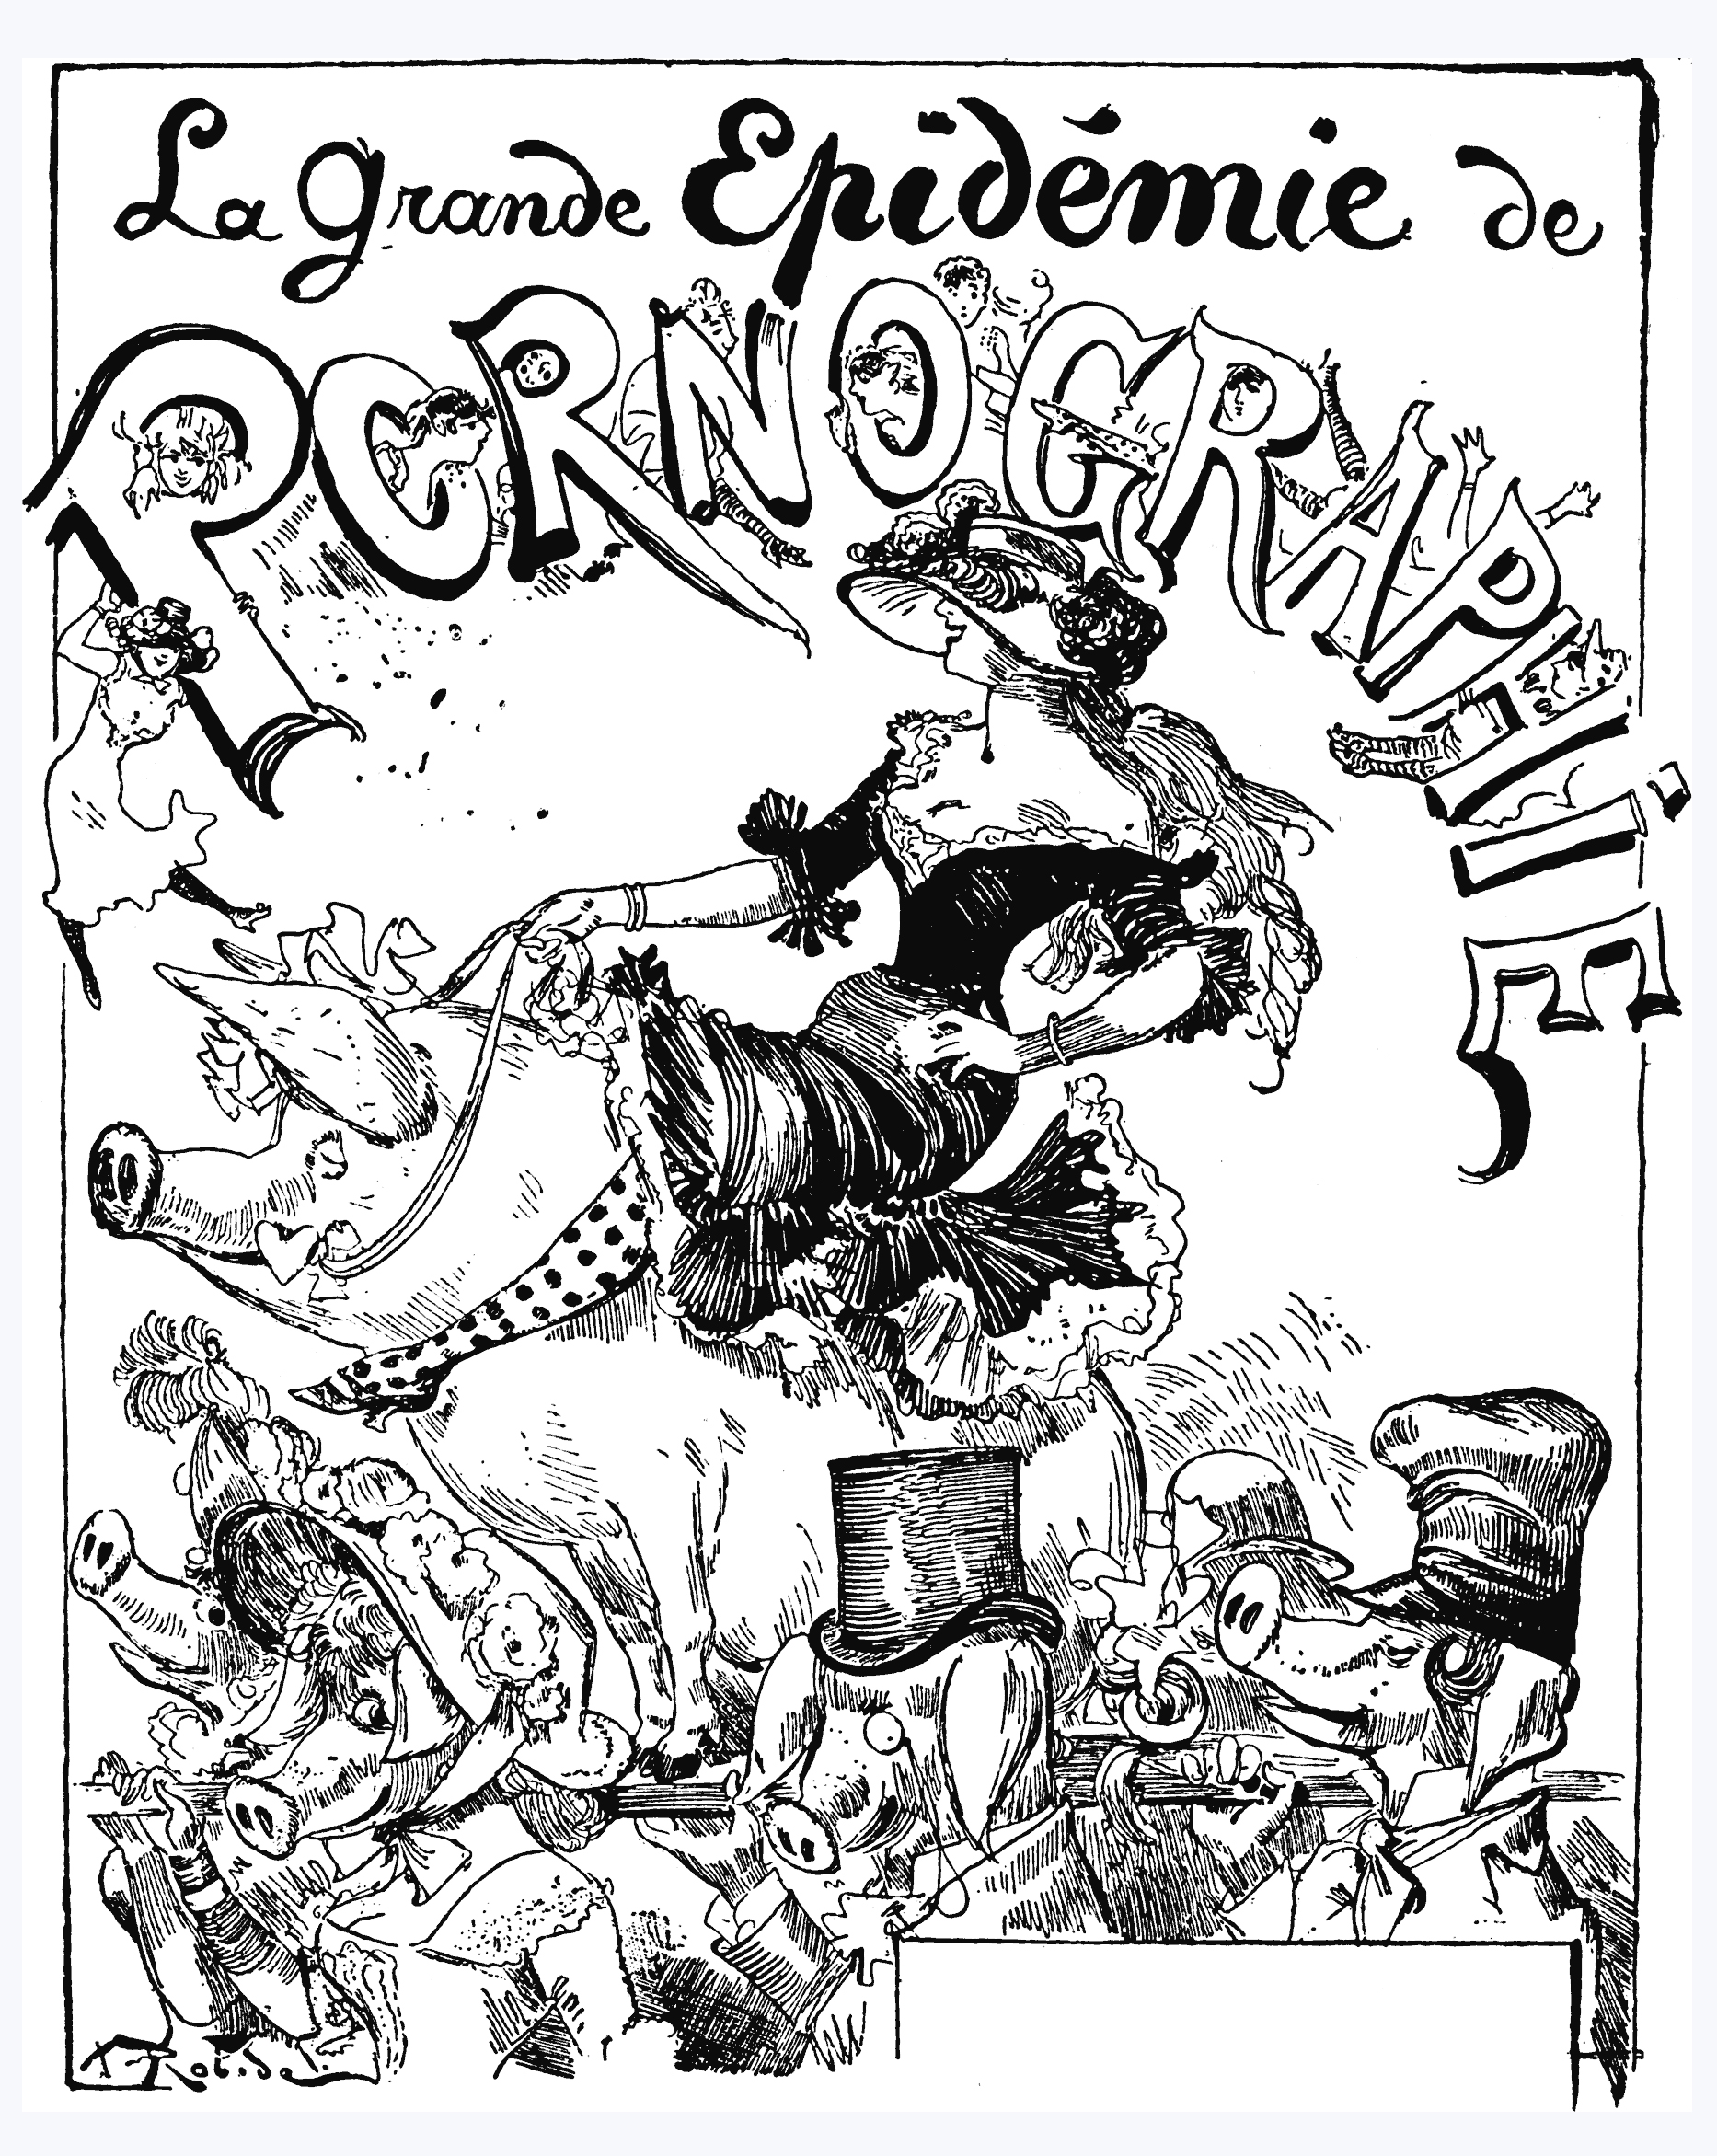 pornography should it be illegal or not writework english caricature on